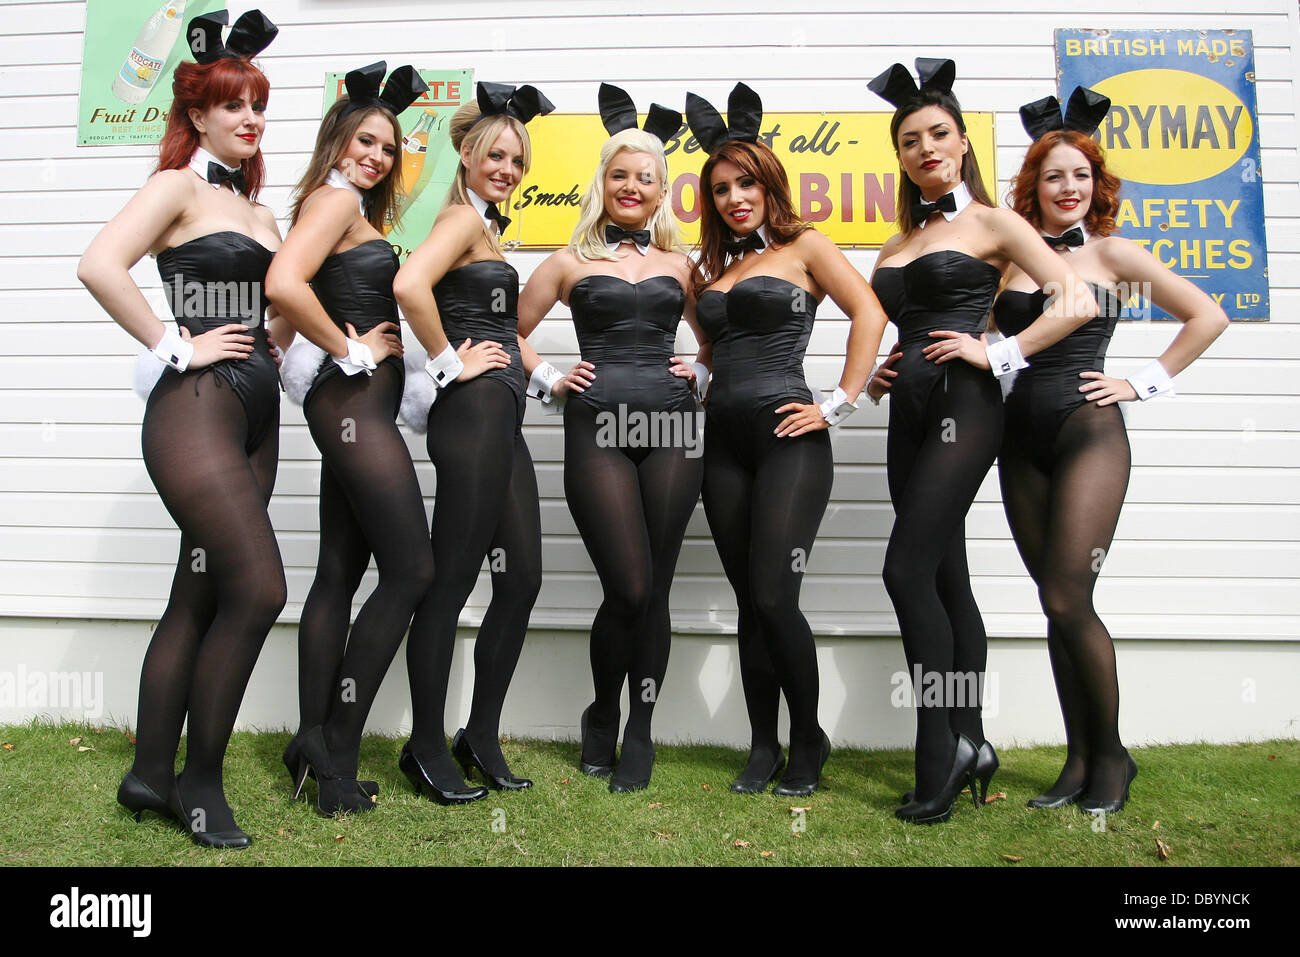 Bunny girls orgy picture 90